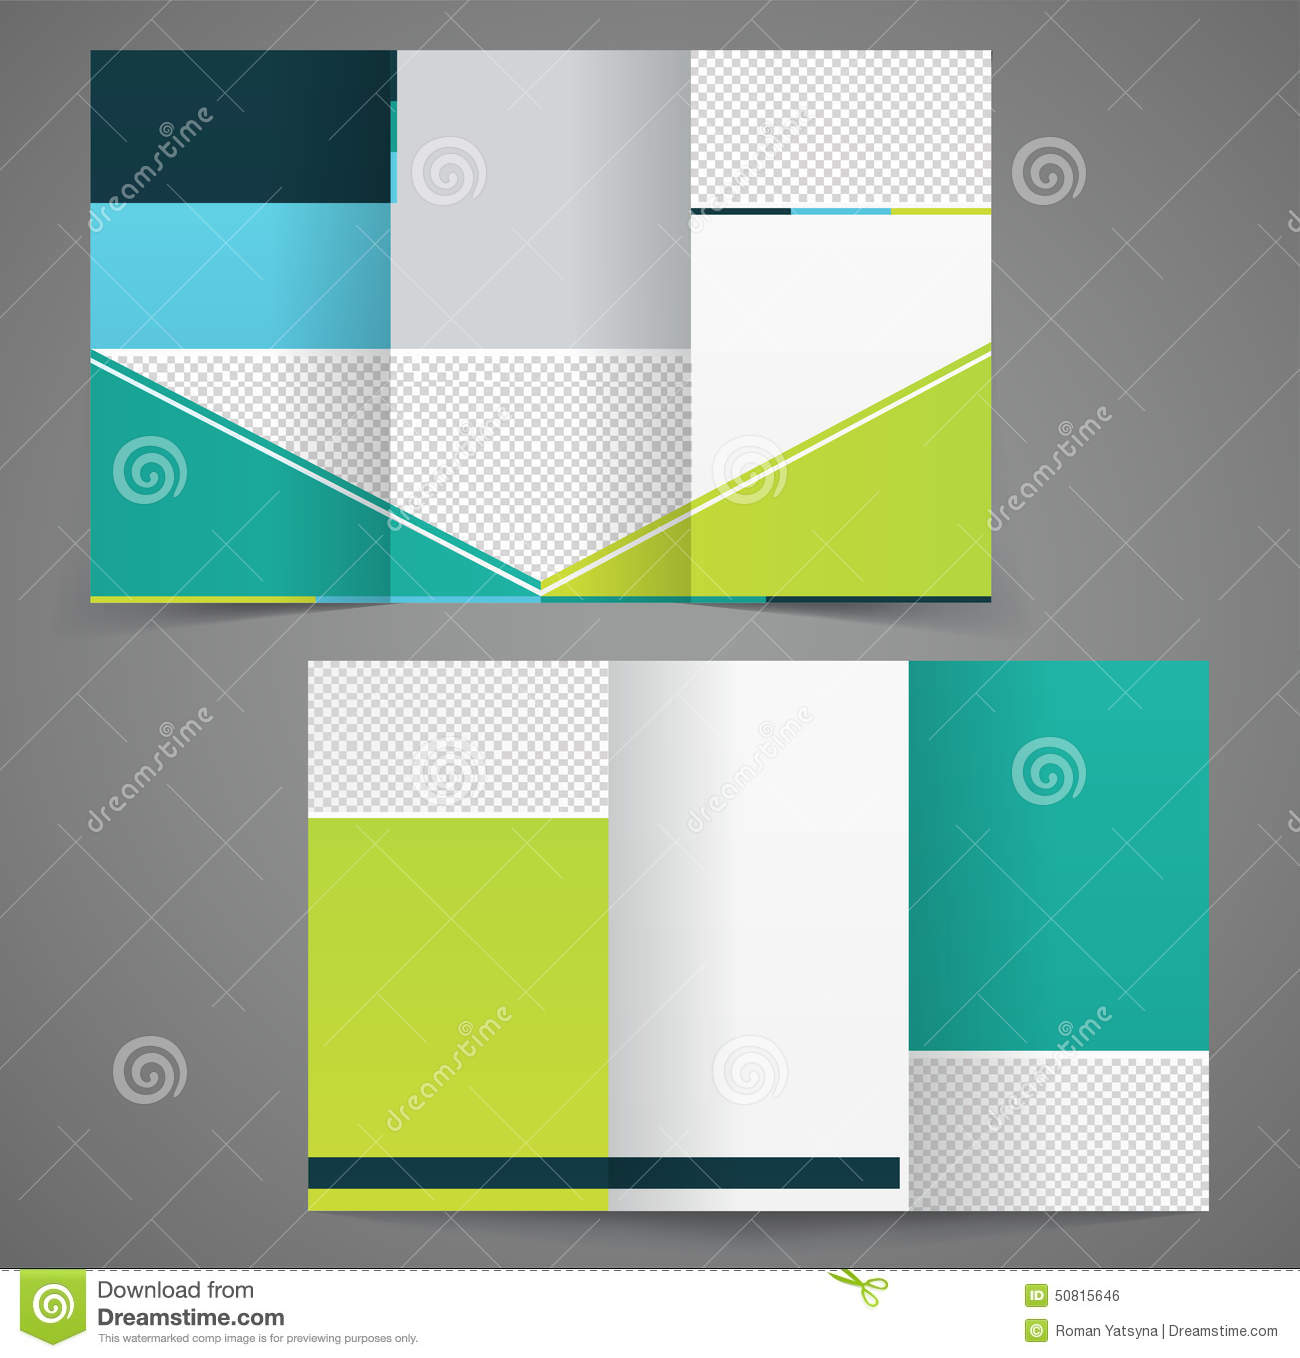 Tri fold business brochure template two sided template for Two fold brochure templates free download